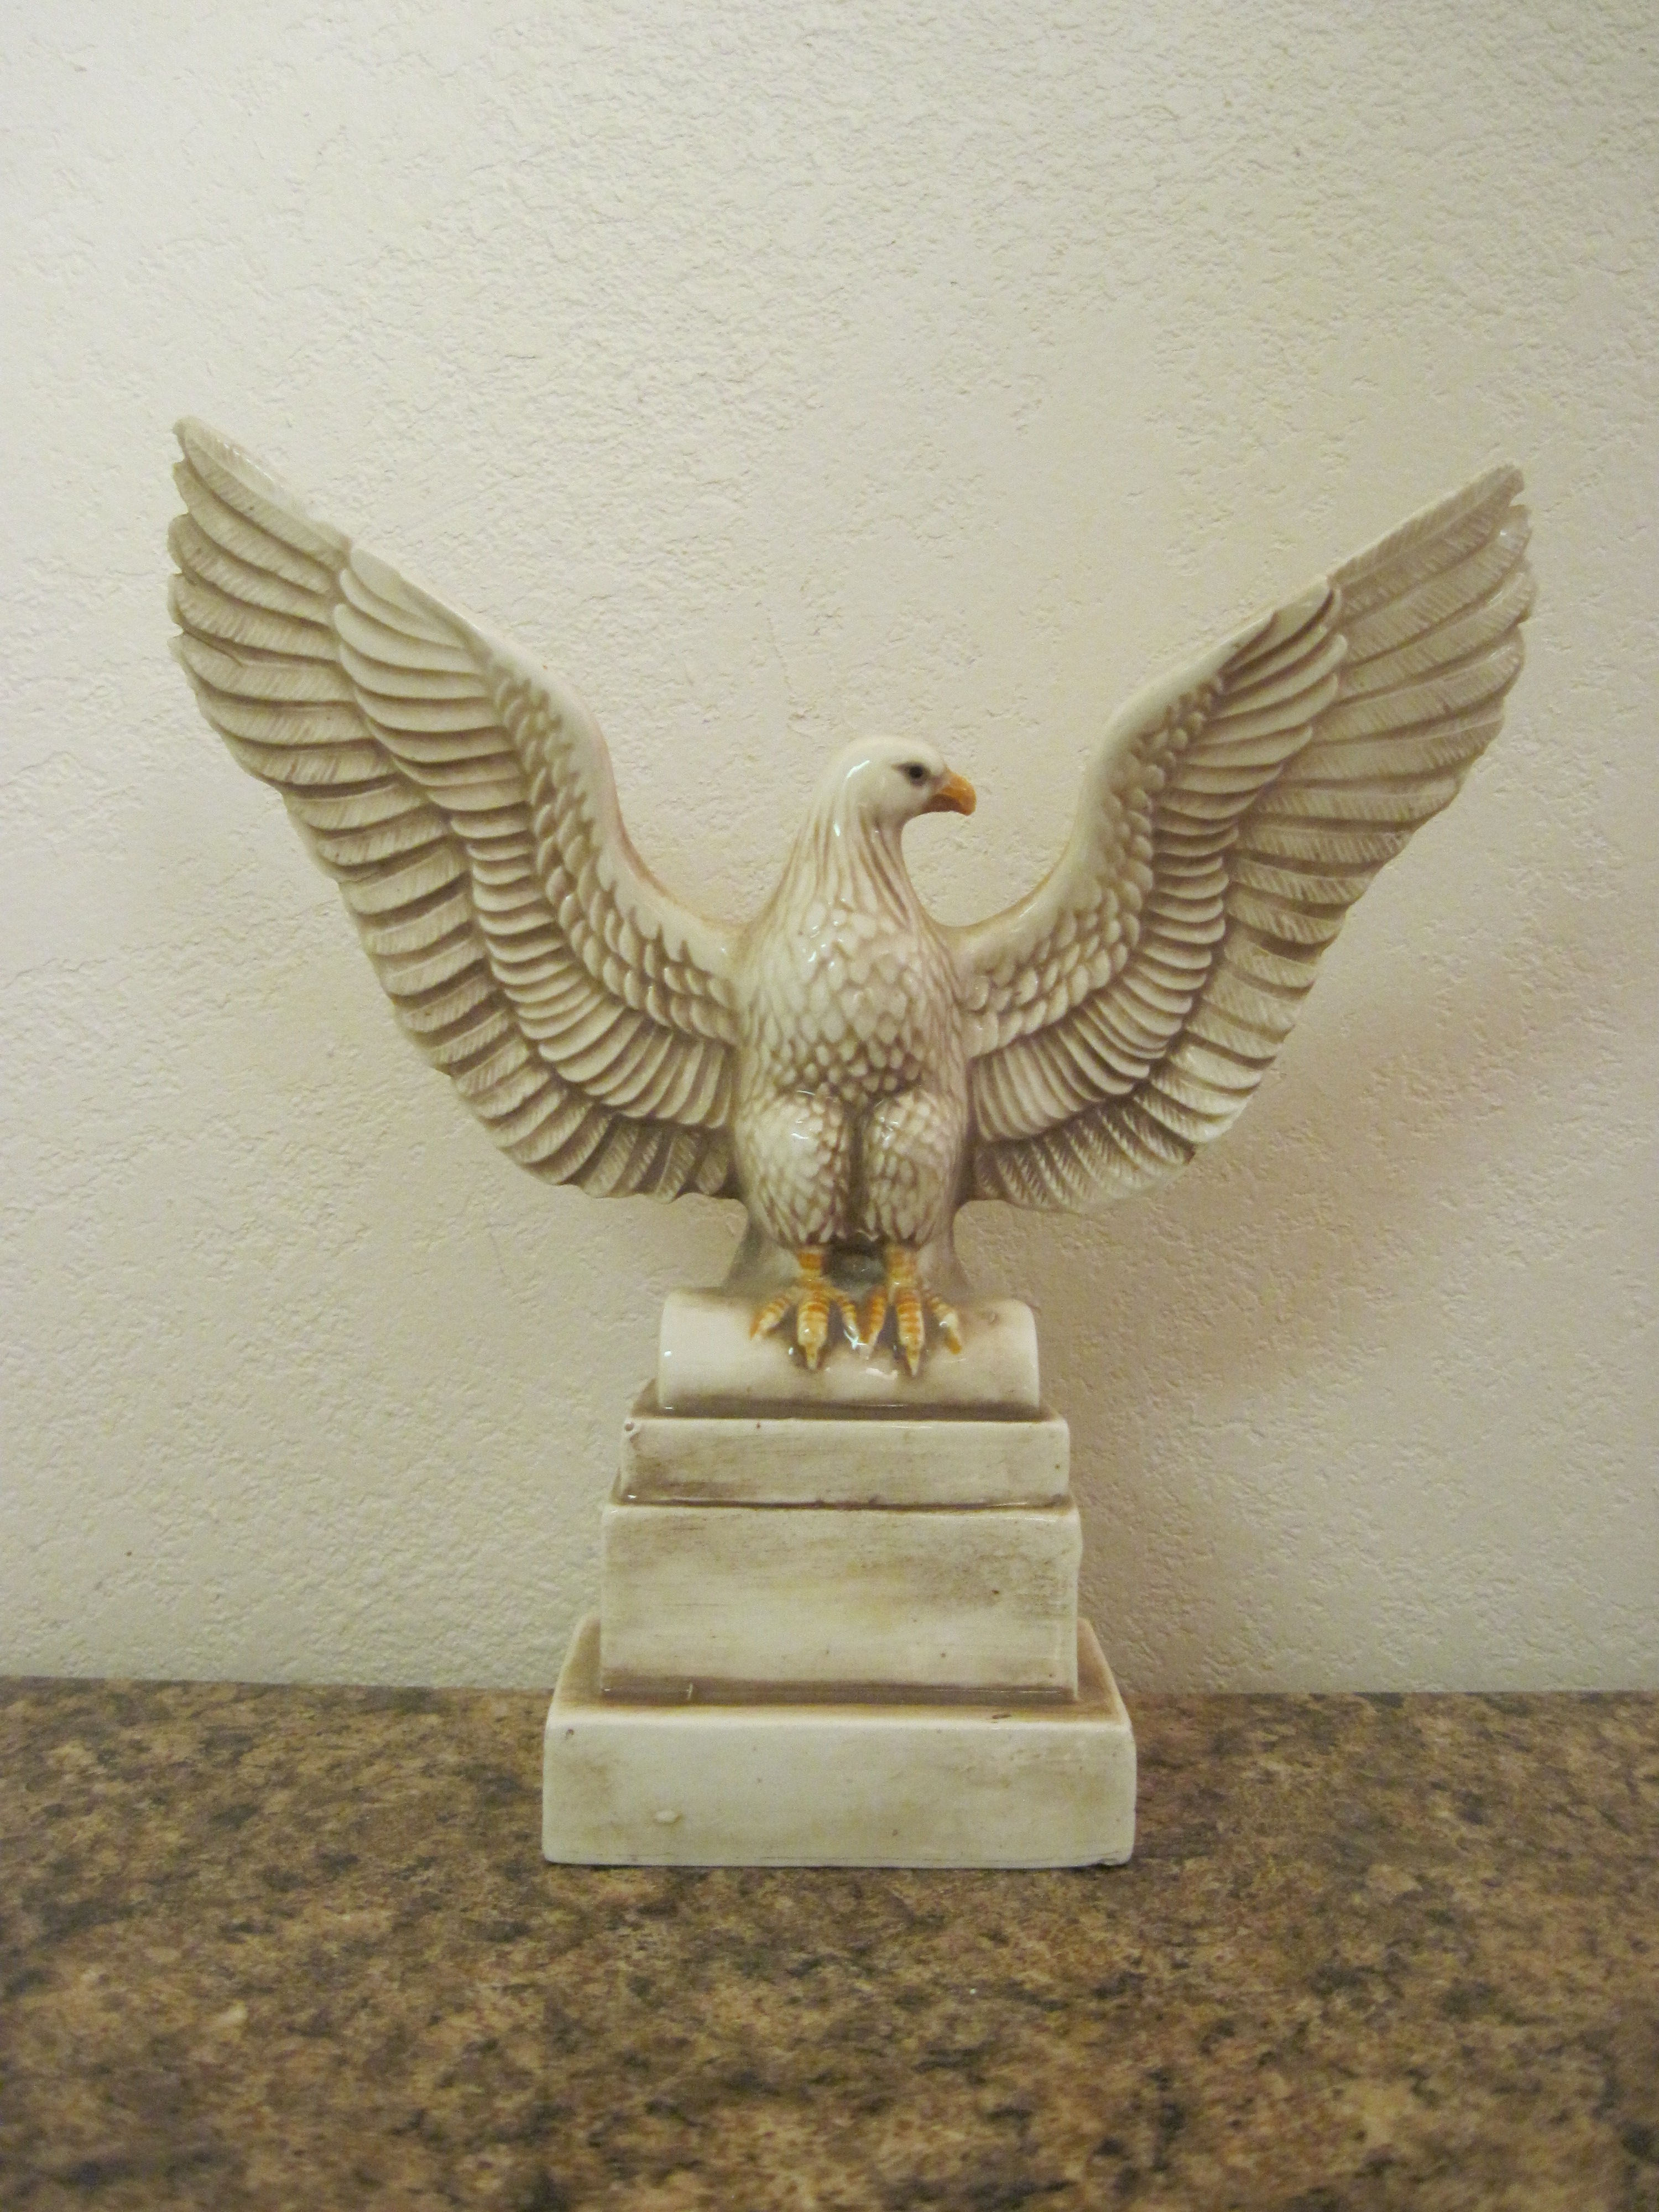 Porcelain Eagle With Wings Spread Wide Standing Proud